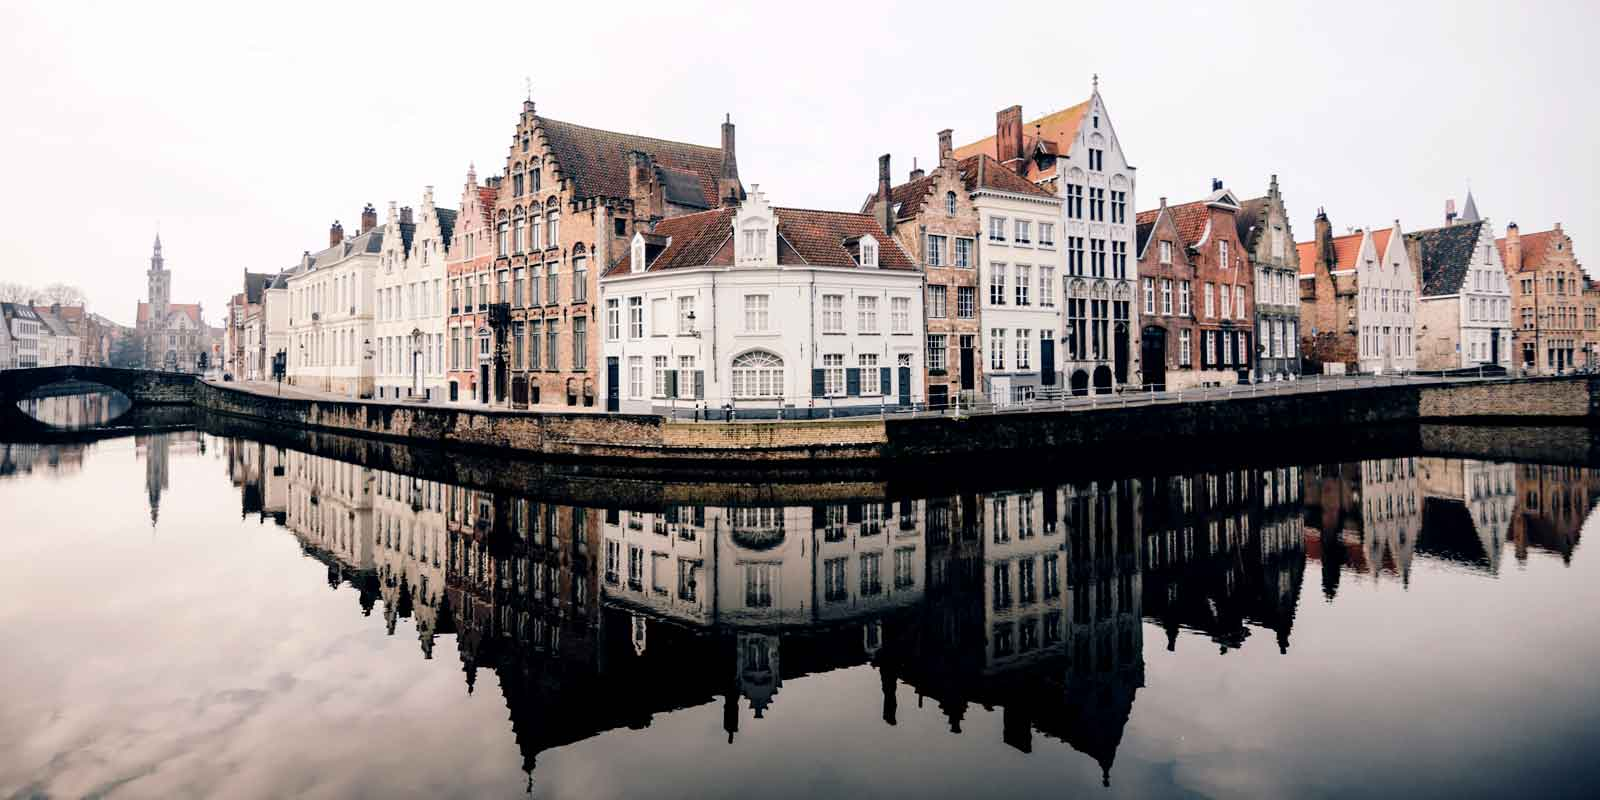 Landscape view of Bruges, Belgium from a bend in a canal, with buildings reflecting in the water.